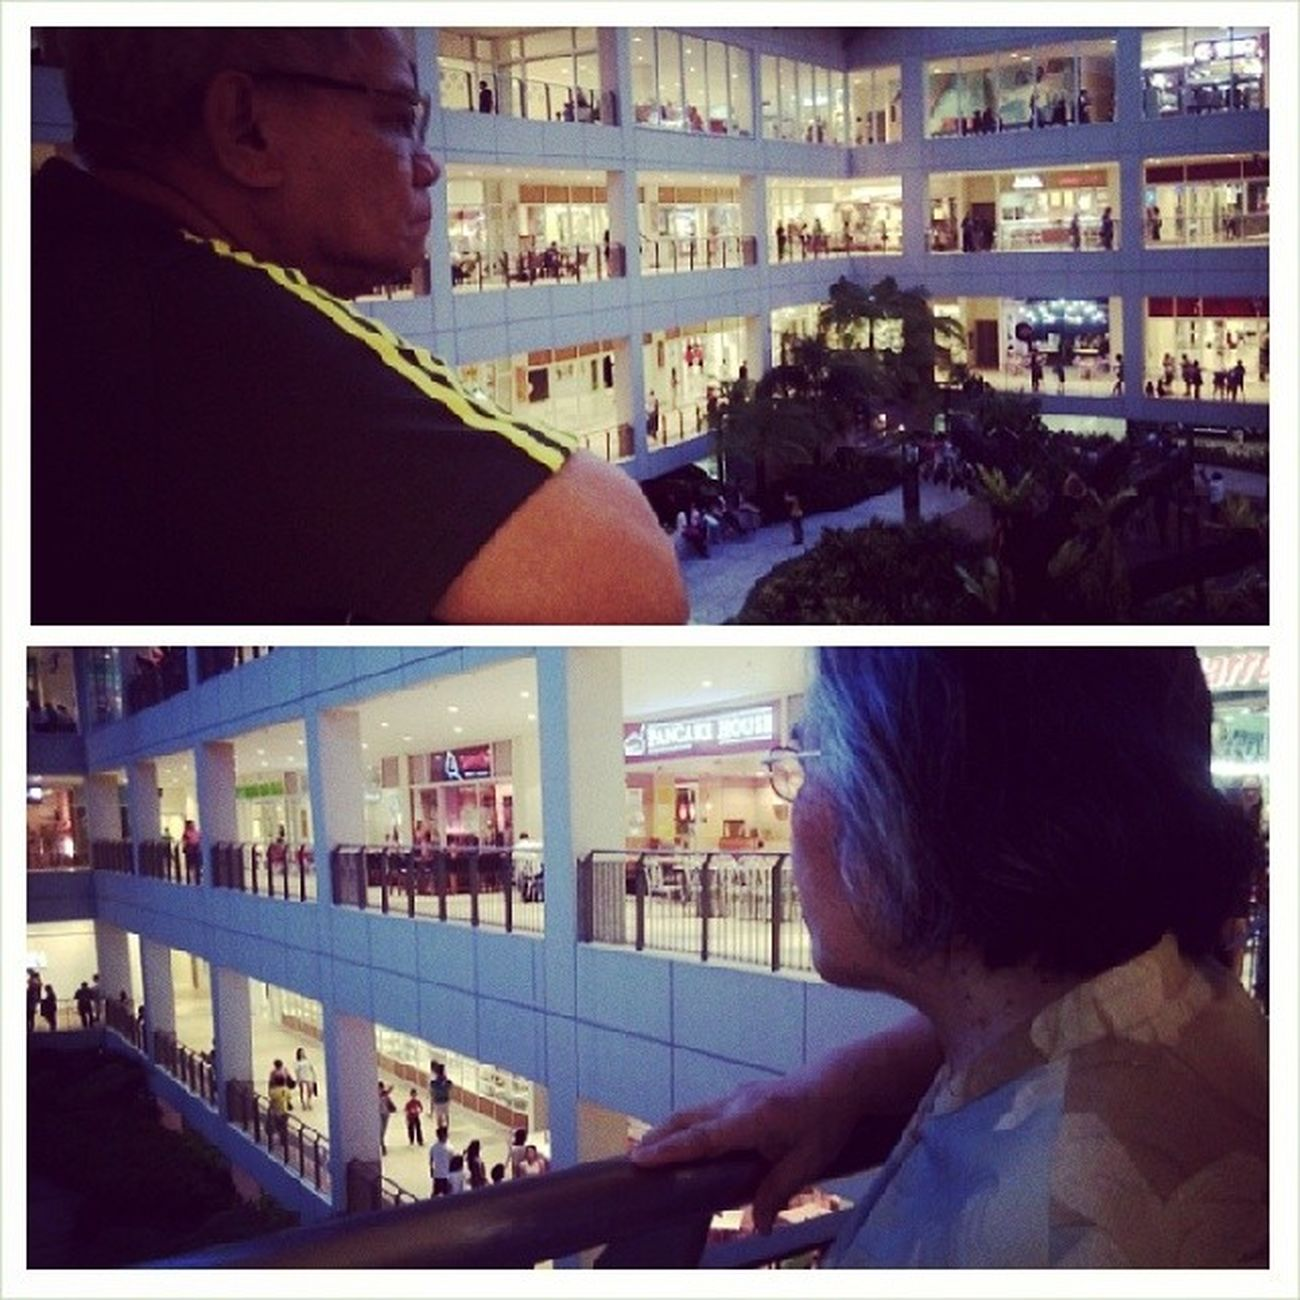 Nanay and Papang in Centrio. Panalagsa rani eh. Lightsgalore